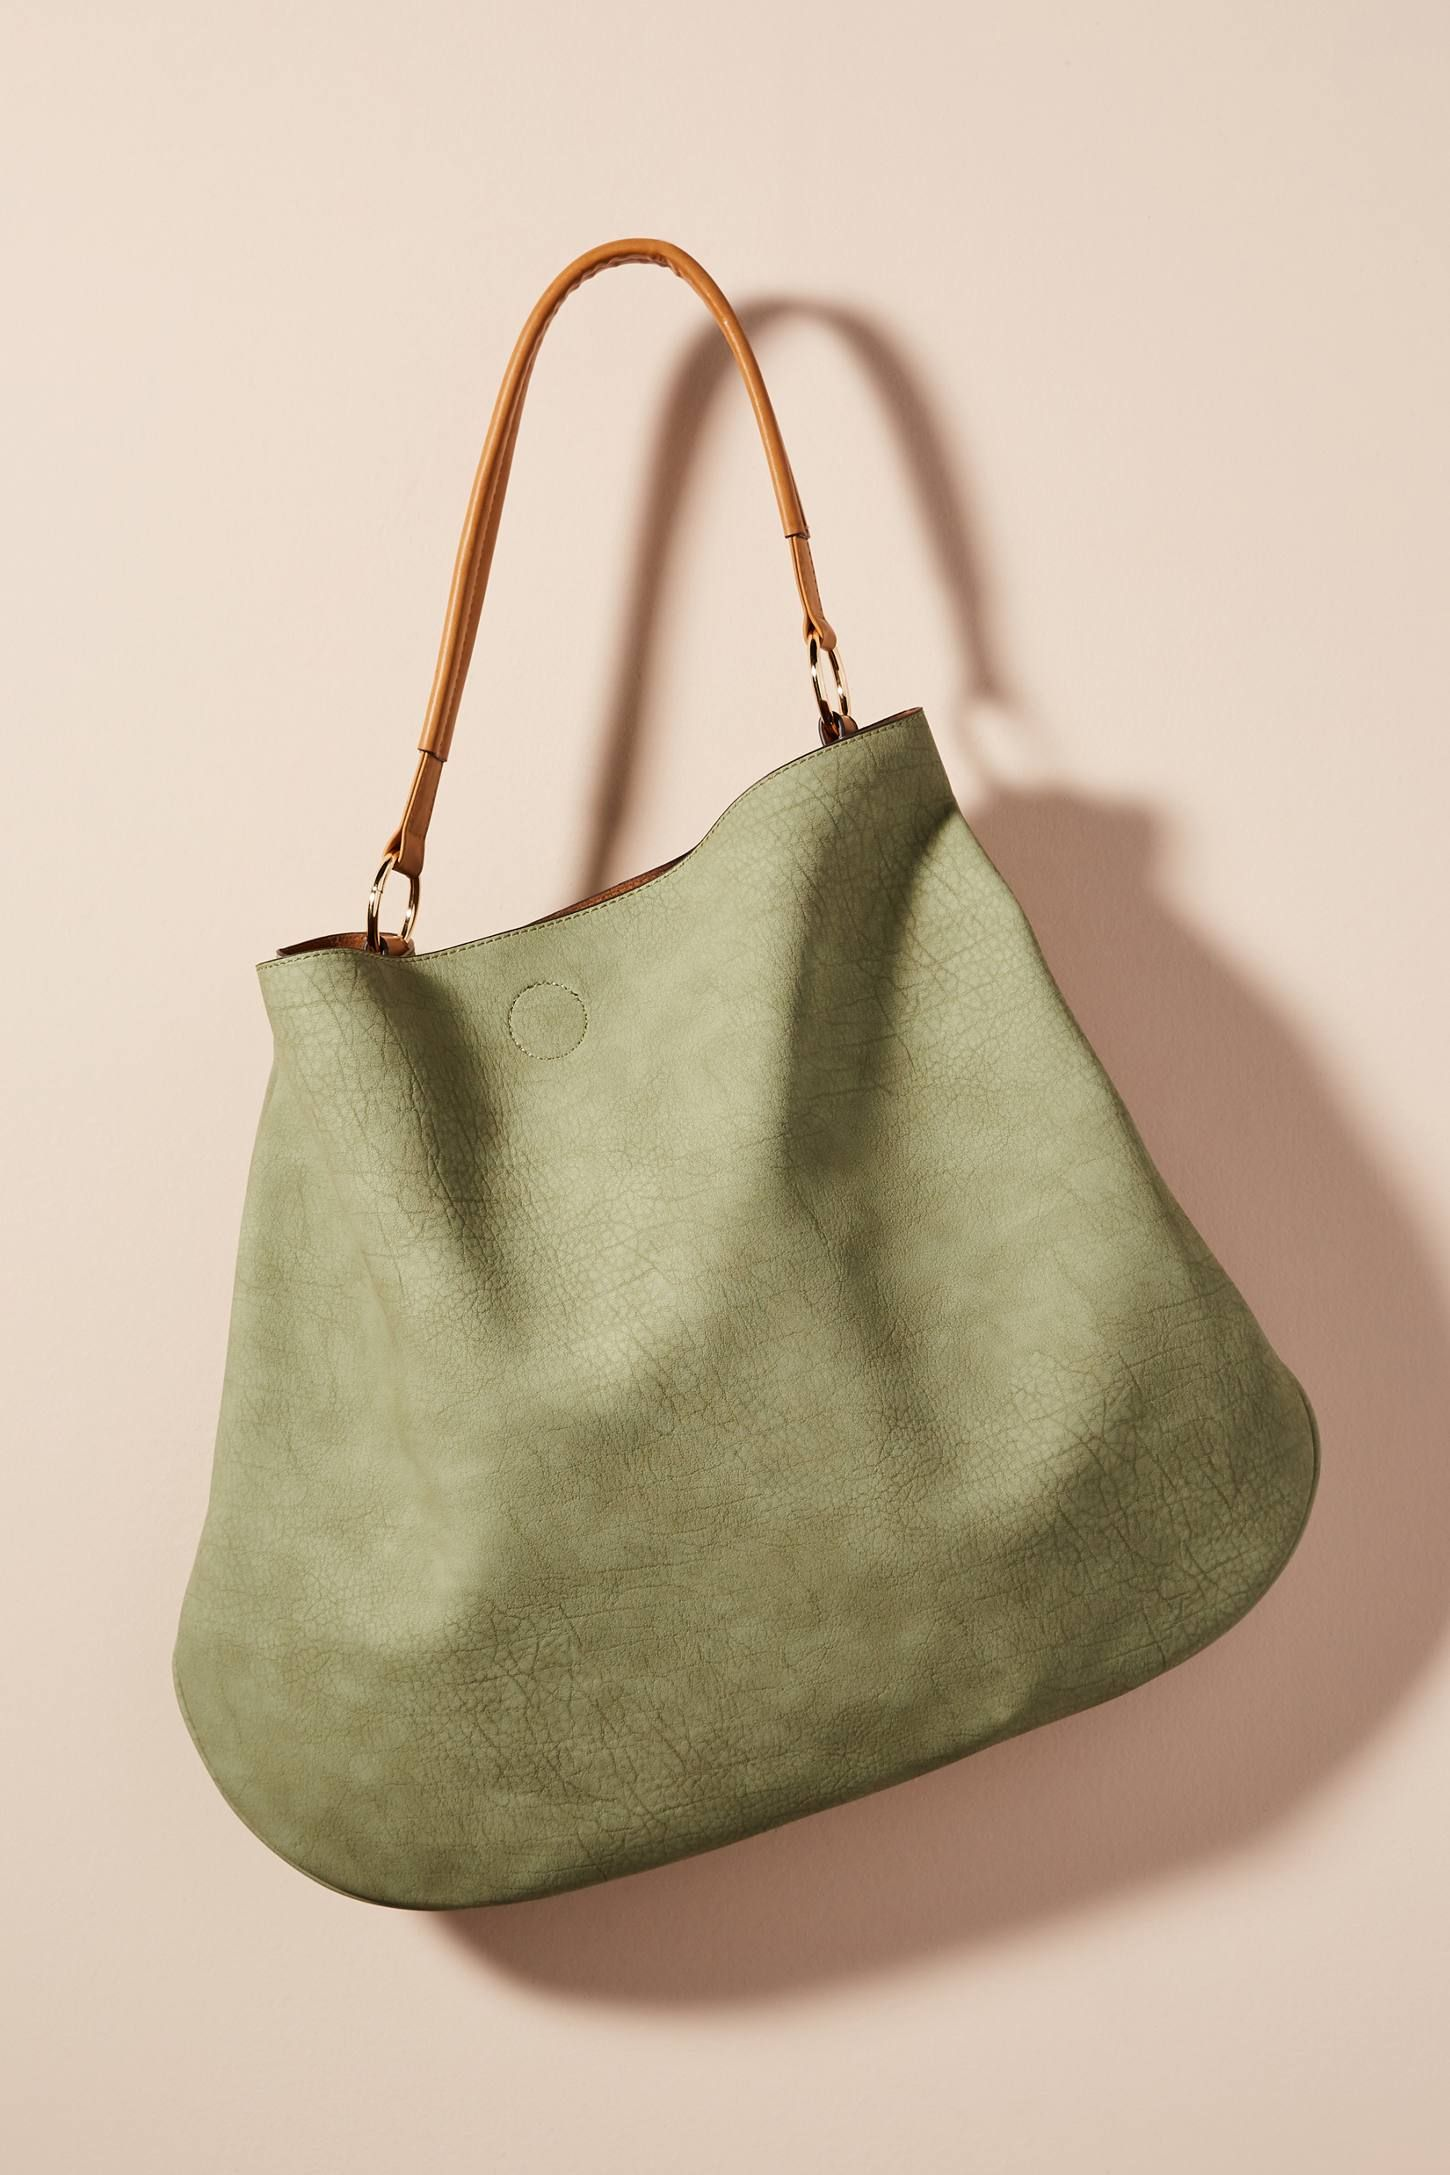 a74d0f57c8b72 Shop the Kennedy Tote Bag and more Anthropologie at Anthropologie today.  Read customer reviews